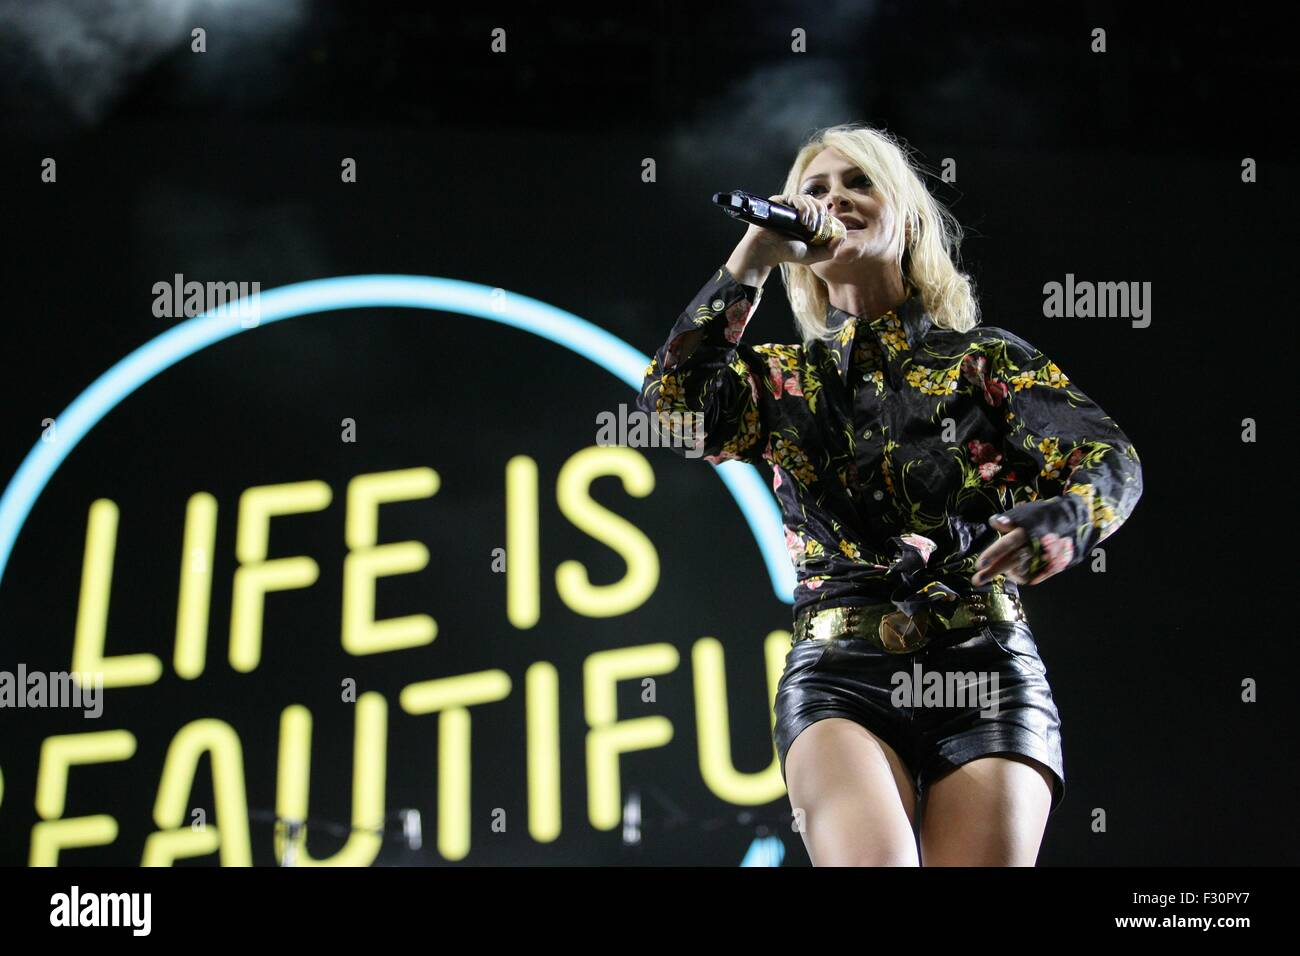 Las Vegas, NV, USA. 26th Sep, 2015. Emily Haines of Metric in attendance for 2015 Life Is Beautiful Festival - SAT, - Stock Image